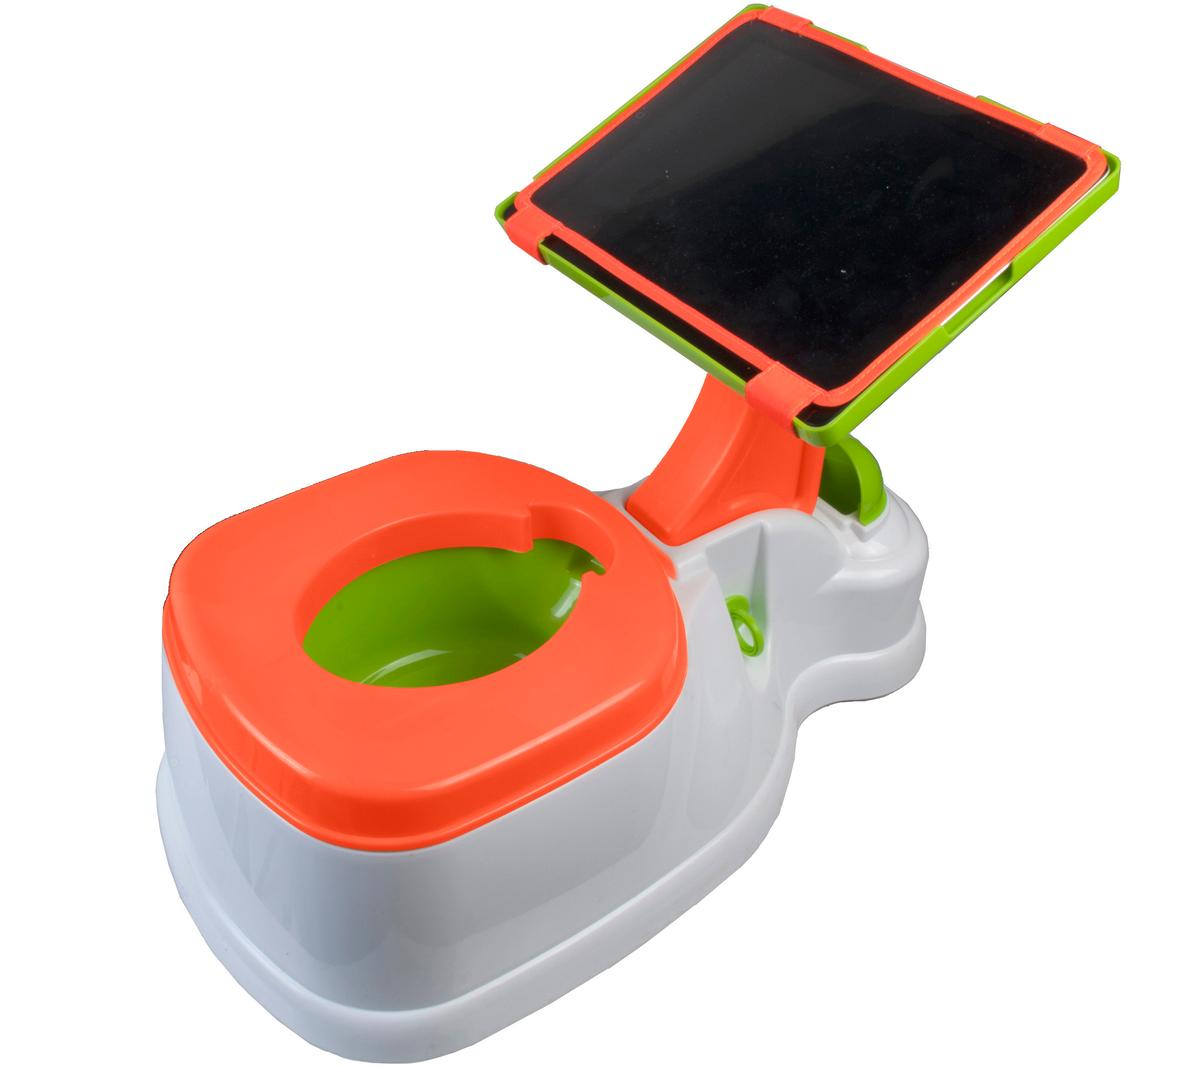 The iPotty has been designed to help children learn to use the potty by keeping them entertained when nature calls